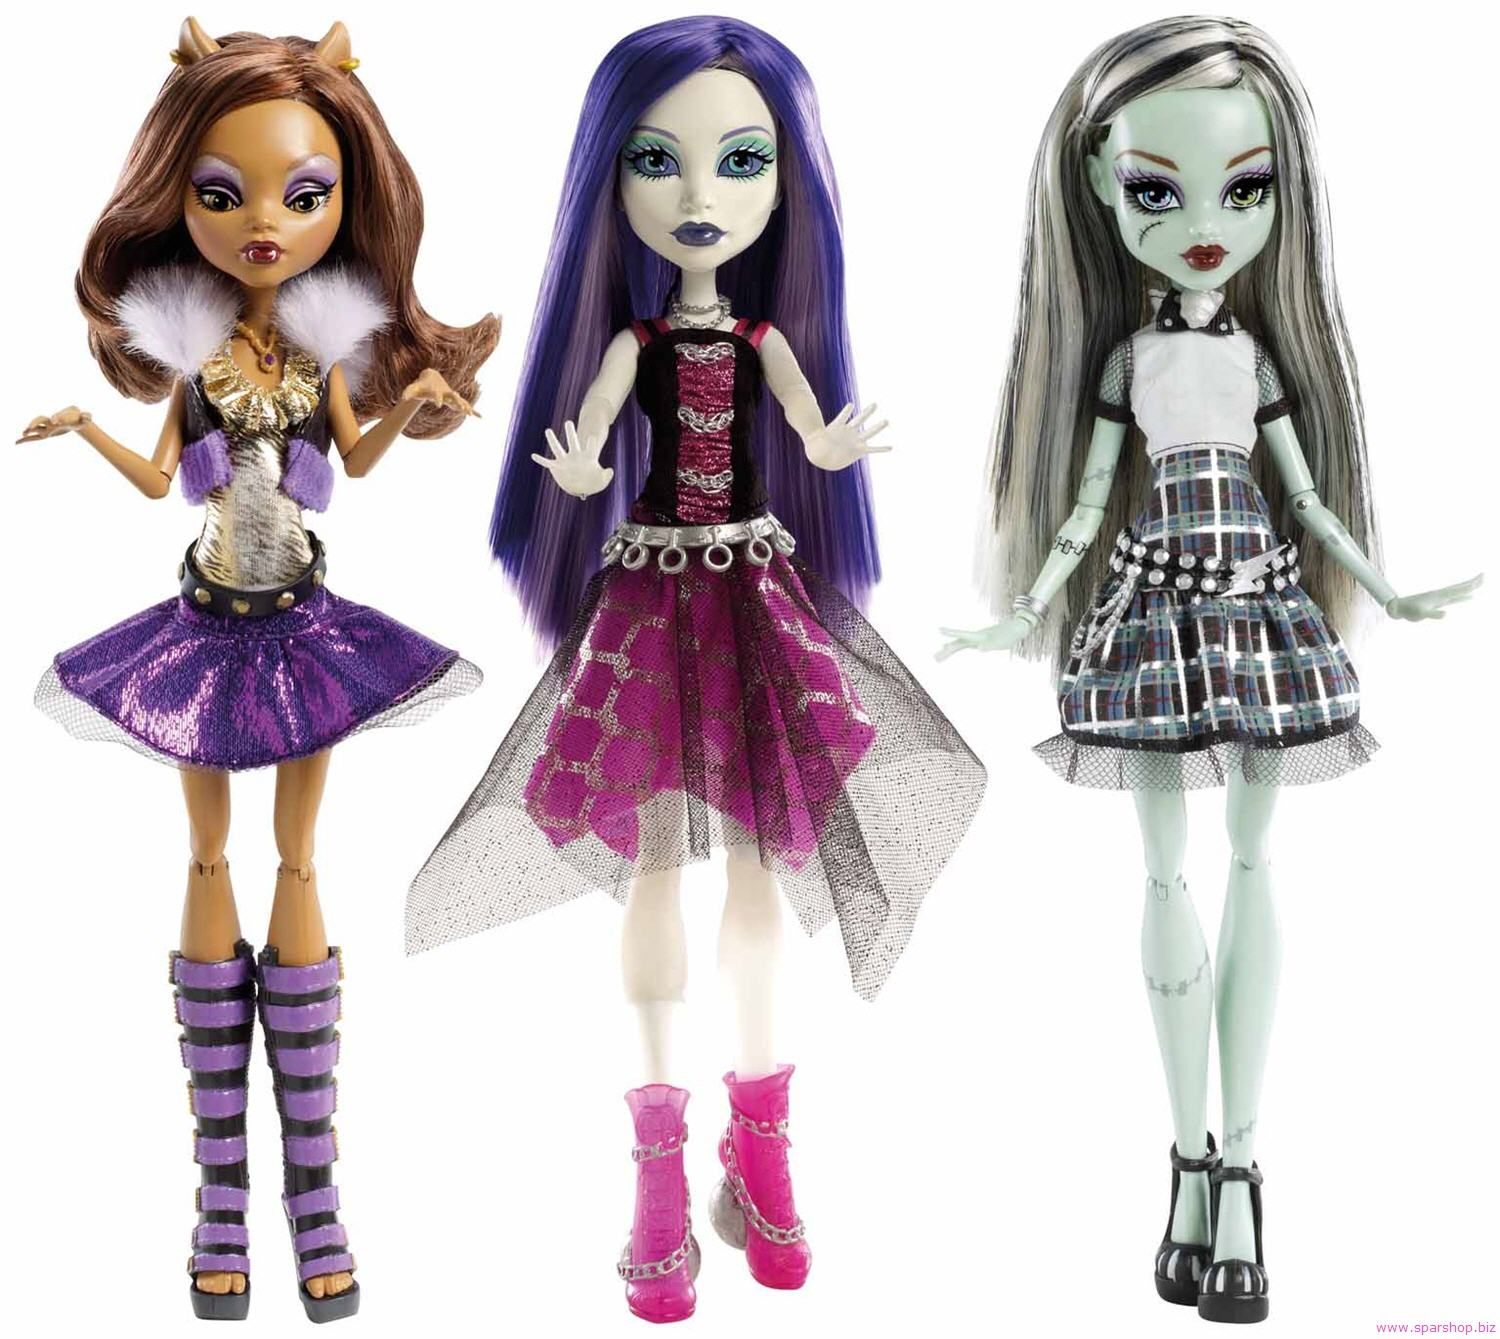 Las Monster High Son Unas Munecas Que Son Monstruos Son Unas Munecas